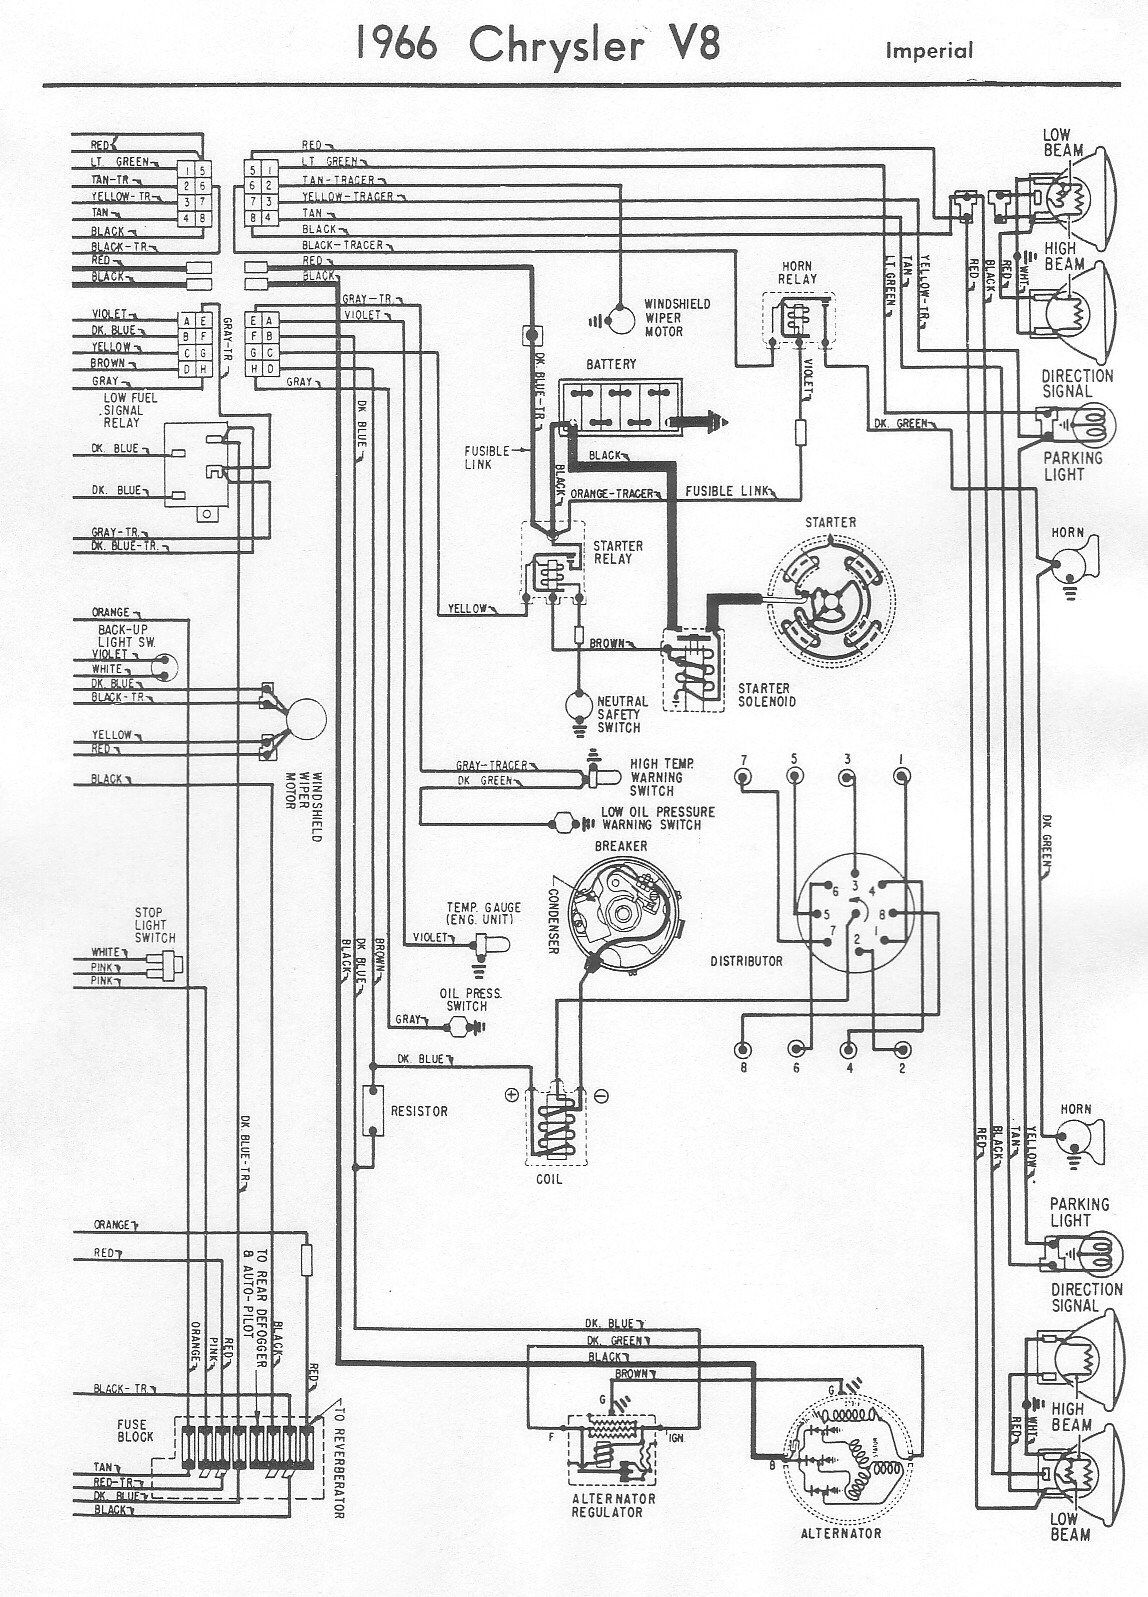 Free Diagram Road Runner Wiring Diagrams Full Version Hd Quality Wiring Diagrams Ilwiring Bandb Veneto It